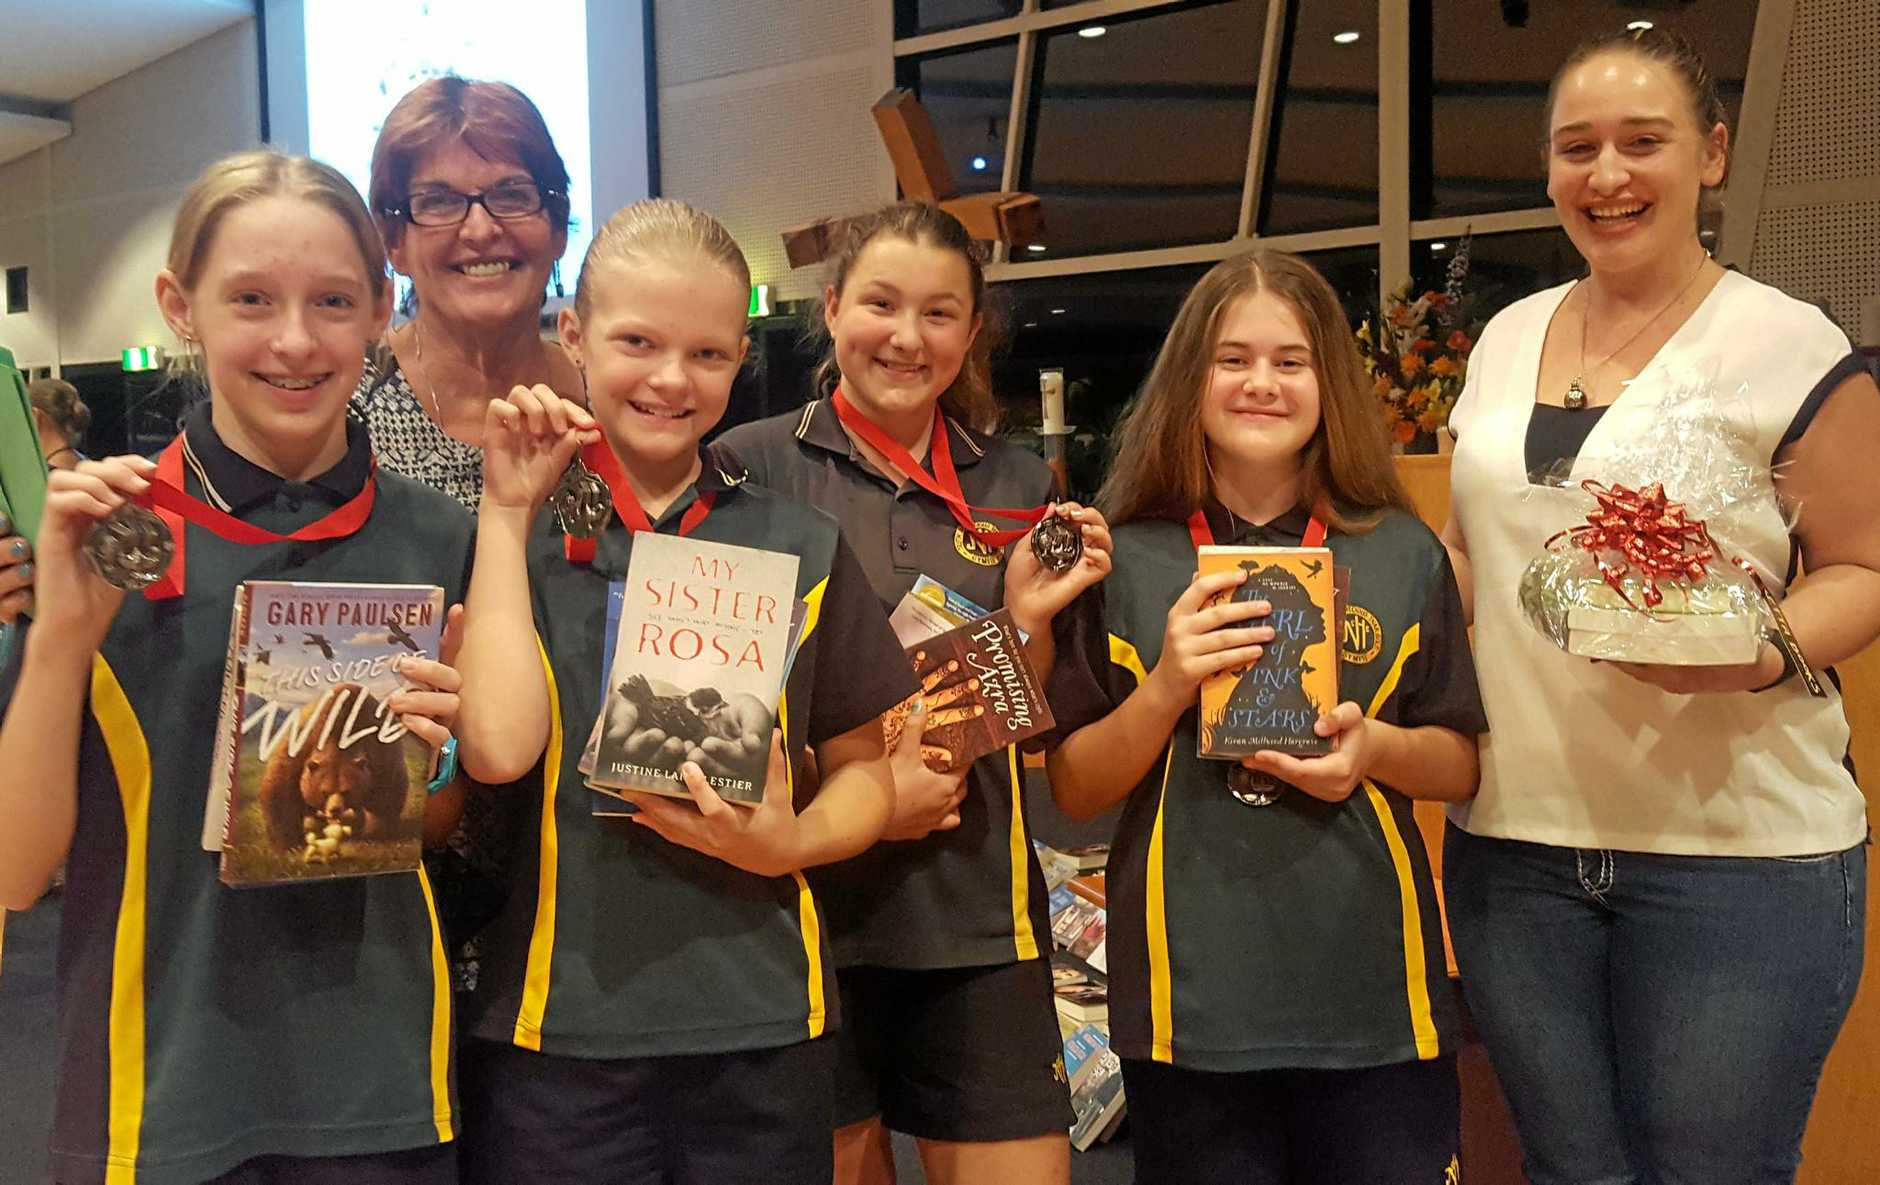 GREAT READ: James Nash State High's Year 7 reading team (from left) Jill Rollings, Ms Diana King, Aliyah Millard, Mikayla Lawler, Scarlett Mansfield and Ms Carolyn King.